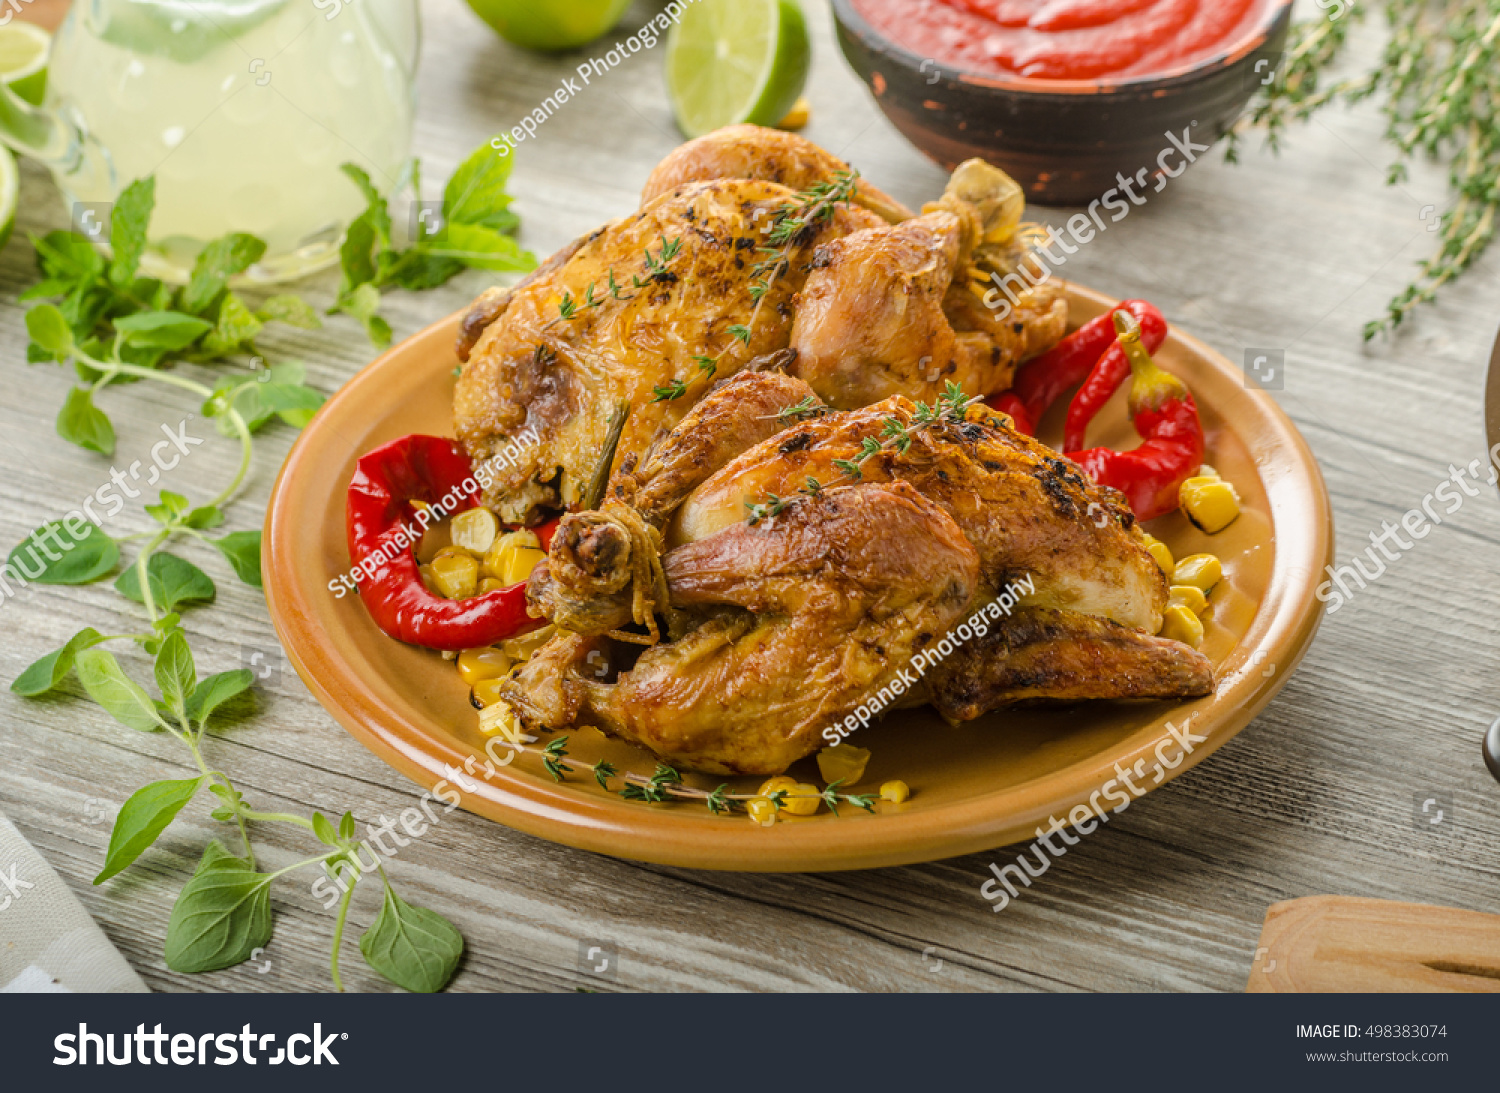 Roasted french baby chicken coquelet hebs foto de stock libre de roasted french baby chicken coquelet with hebs and grilled corn fresh lime lemonade forumfinder Choice Image